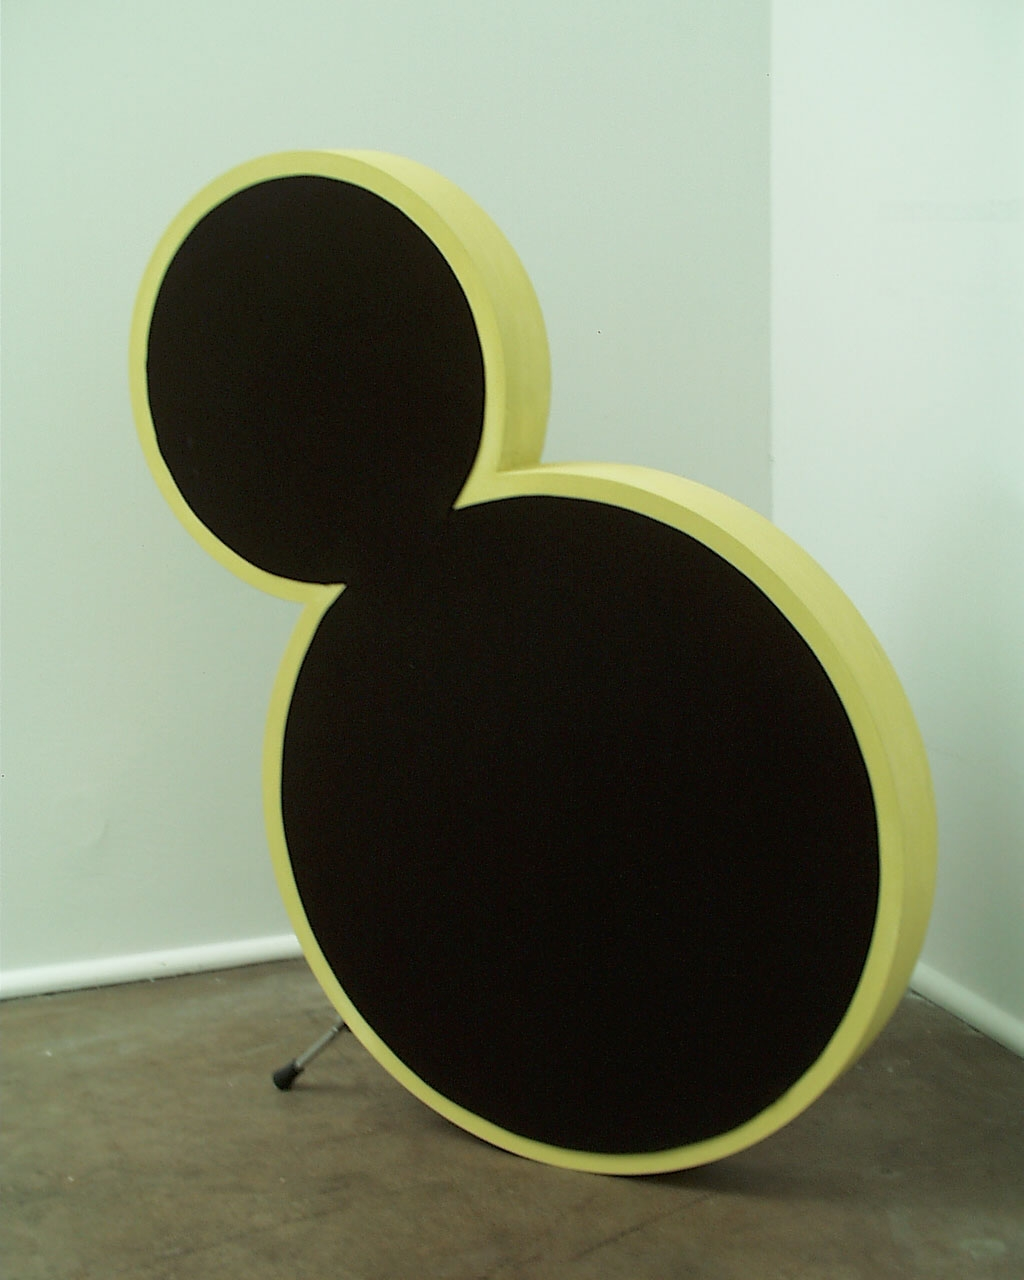 Double Drum Speaker, 2001